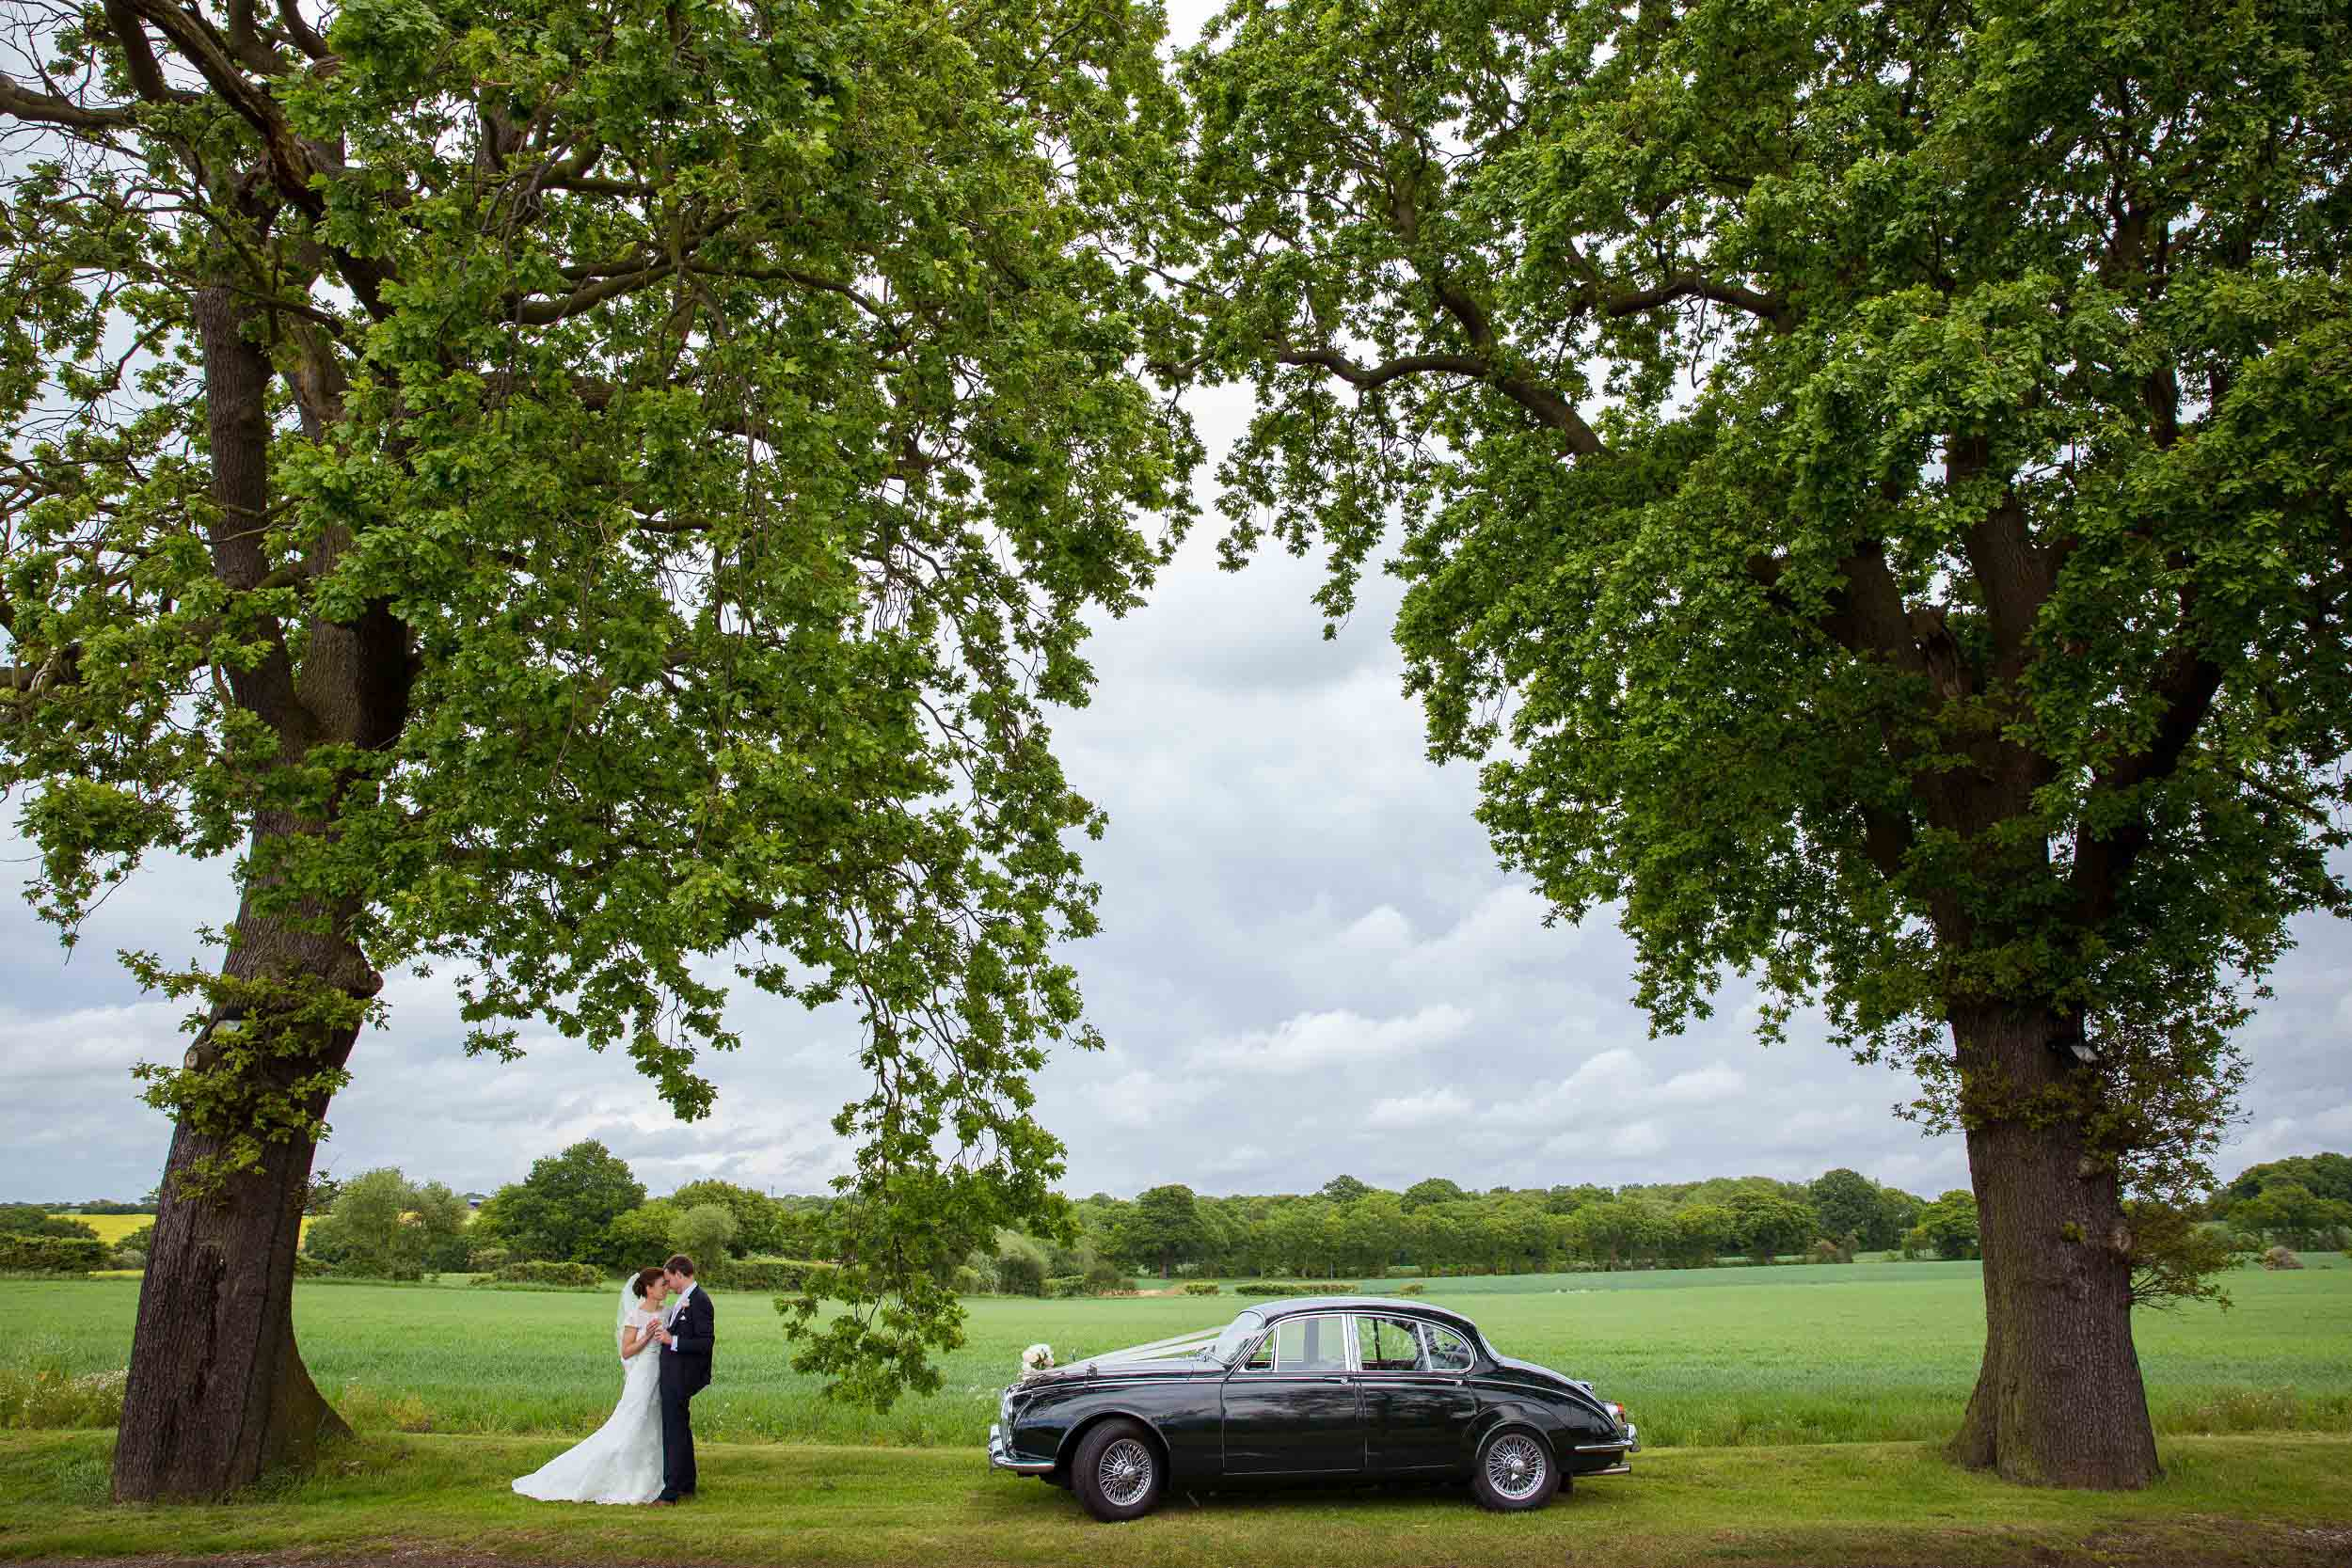 Crondon Park Wedding - Essex Wedding Photographer